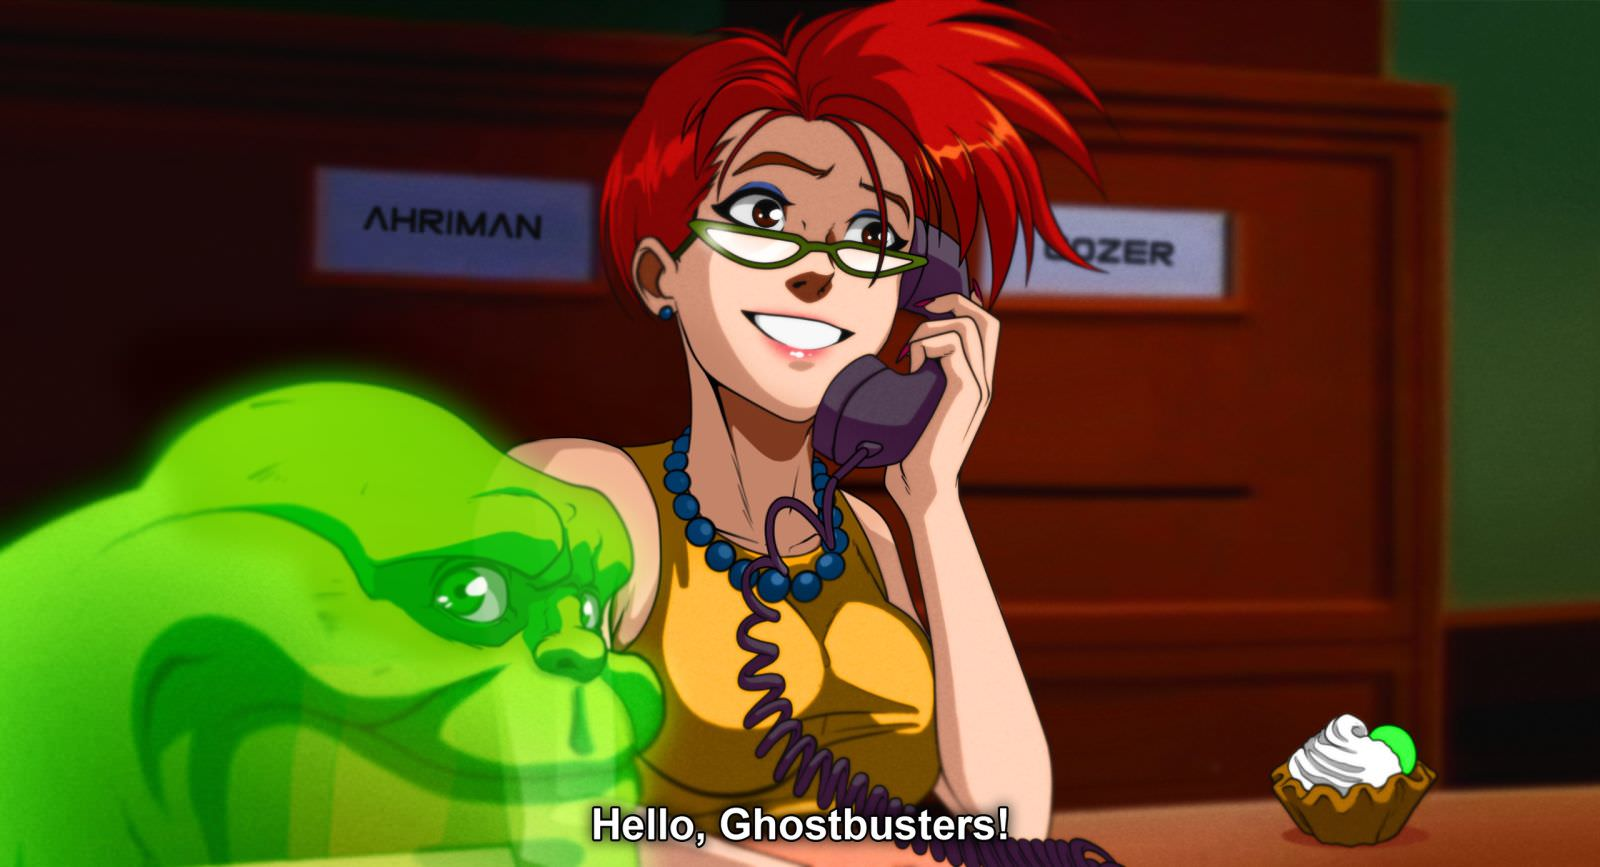 Ahriman GHOSTBUSTER 1 - Must-See Art: Ahriman Turns Classic Flicks Into Anime!